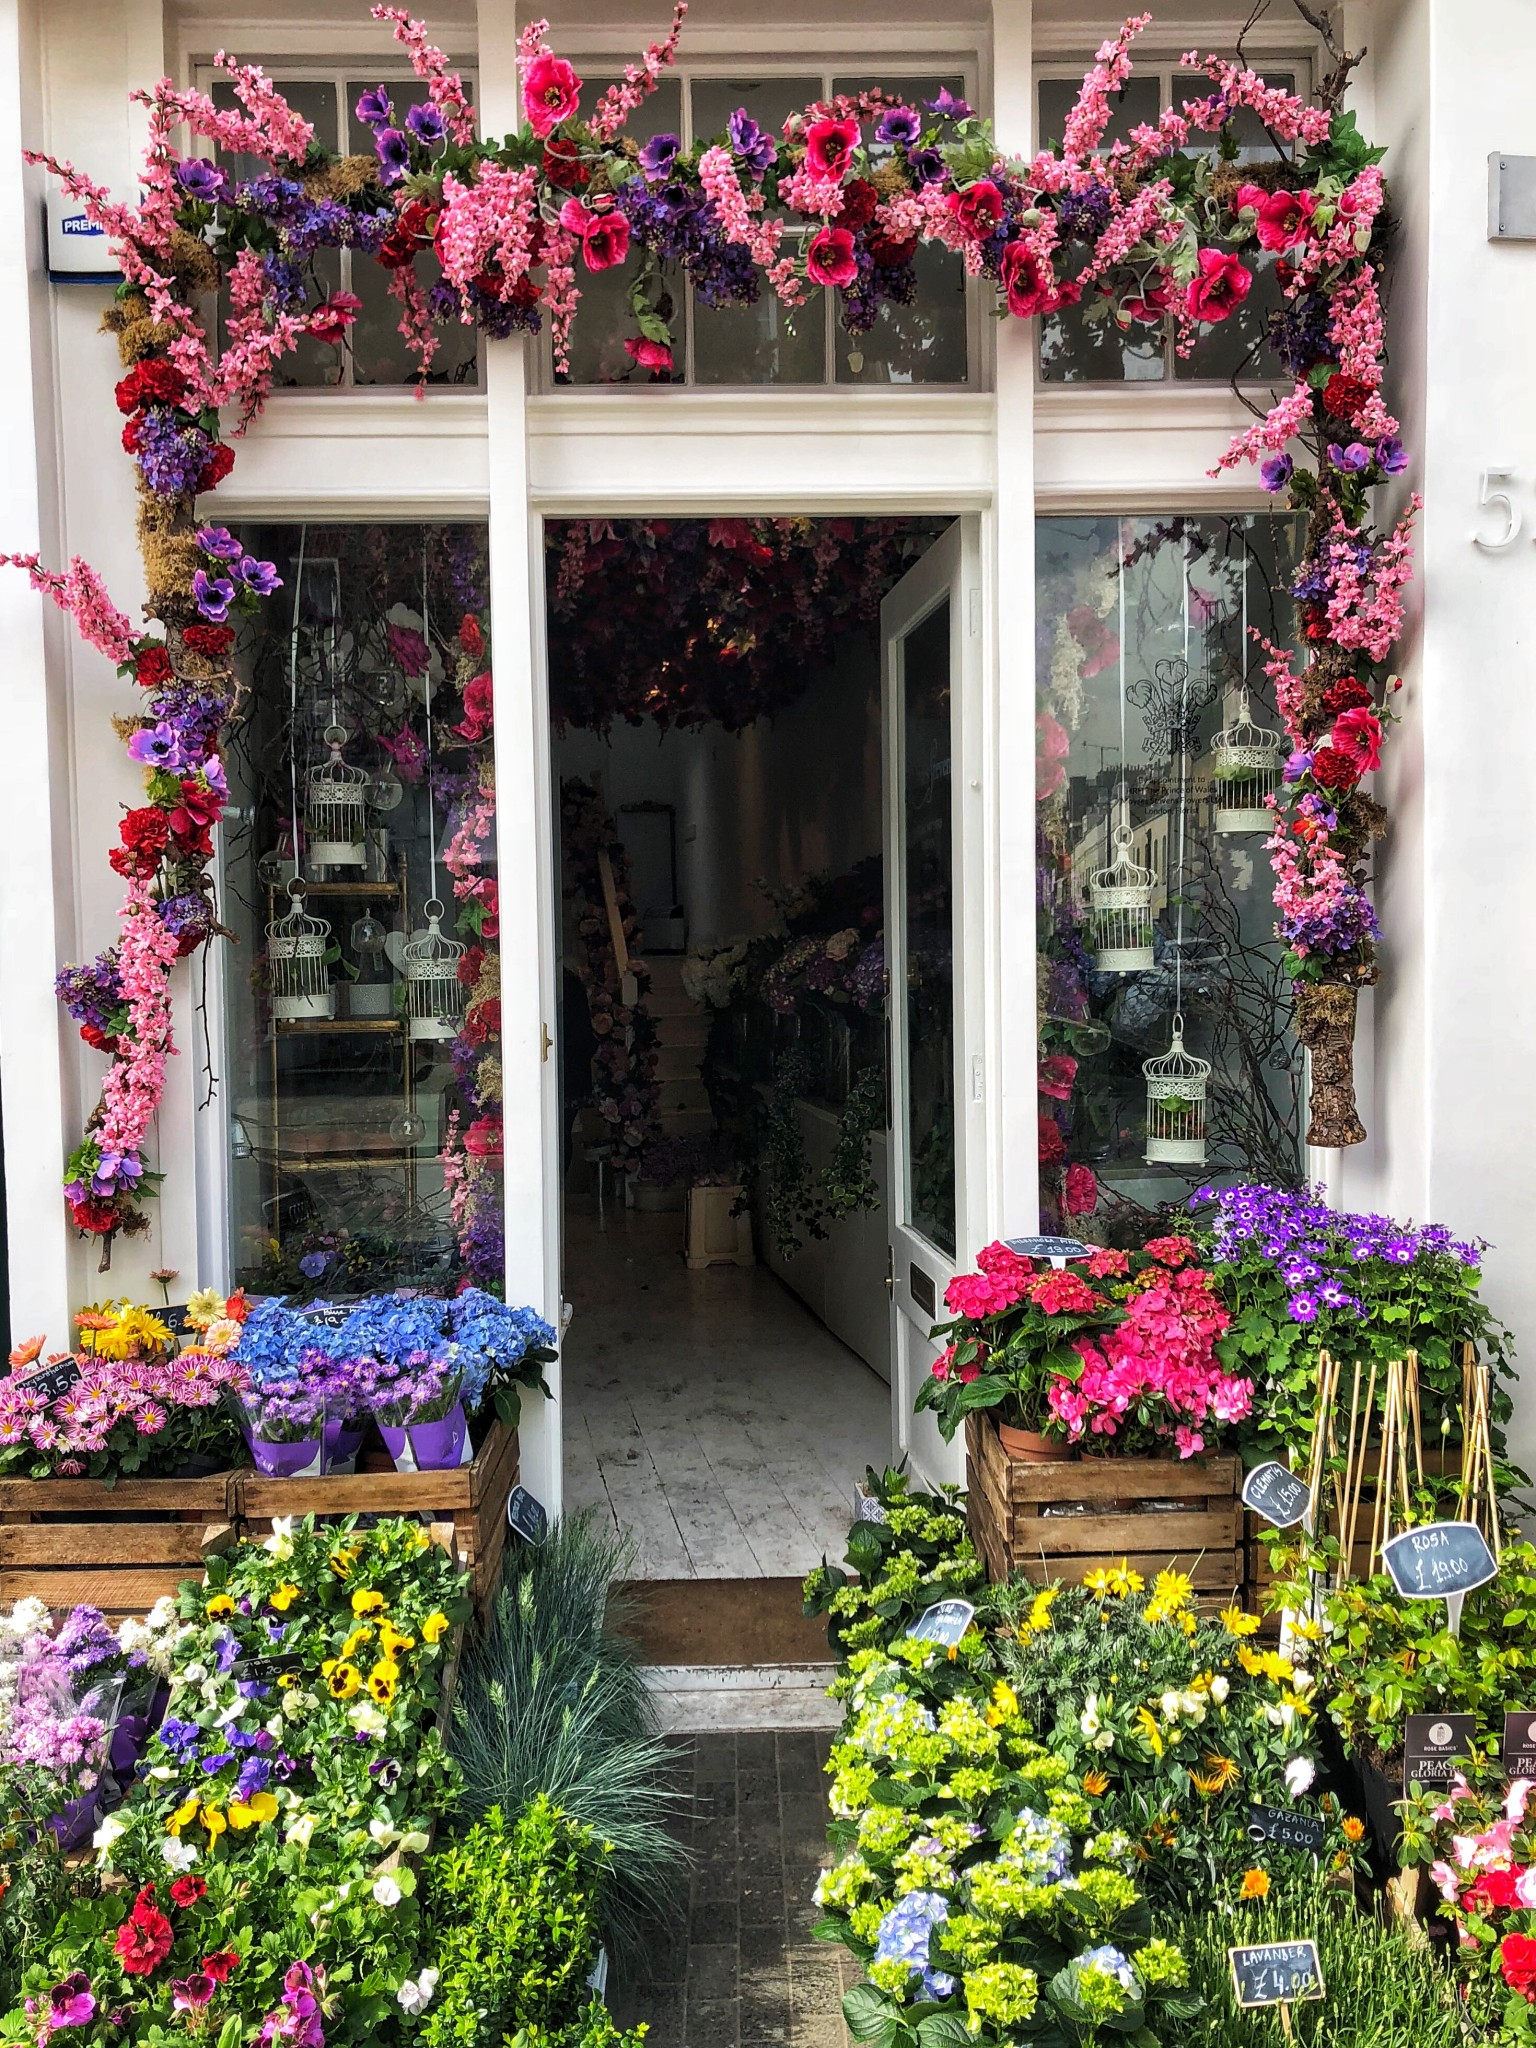 elizabeth street, belgravia, most instagrammable places in london, the-alyst.com